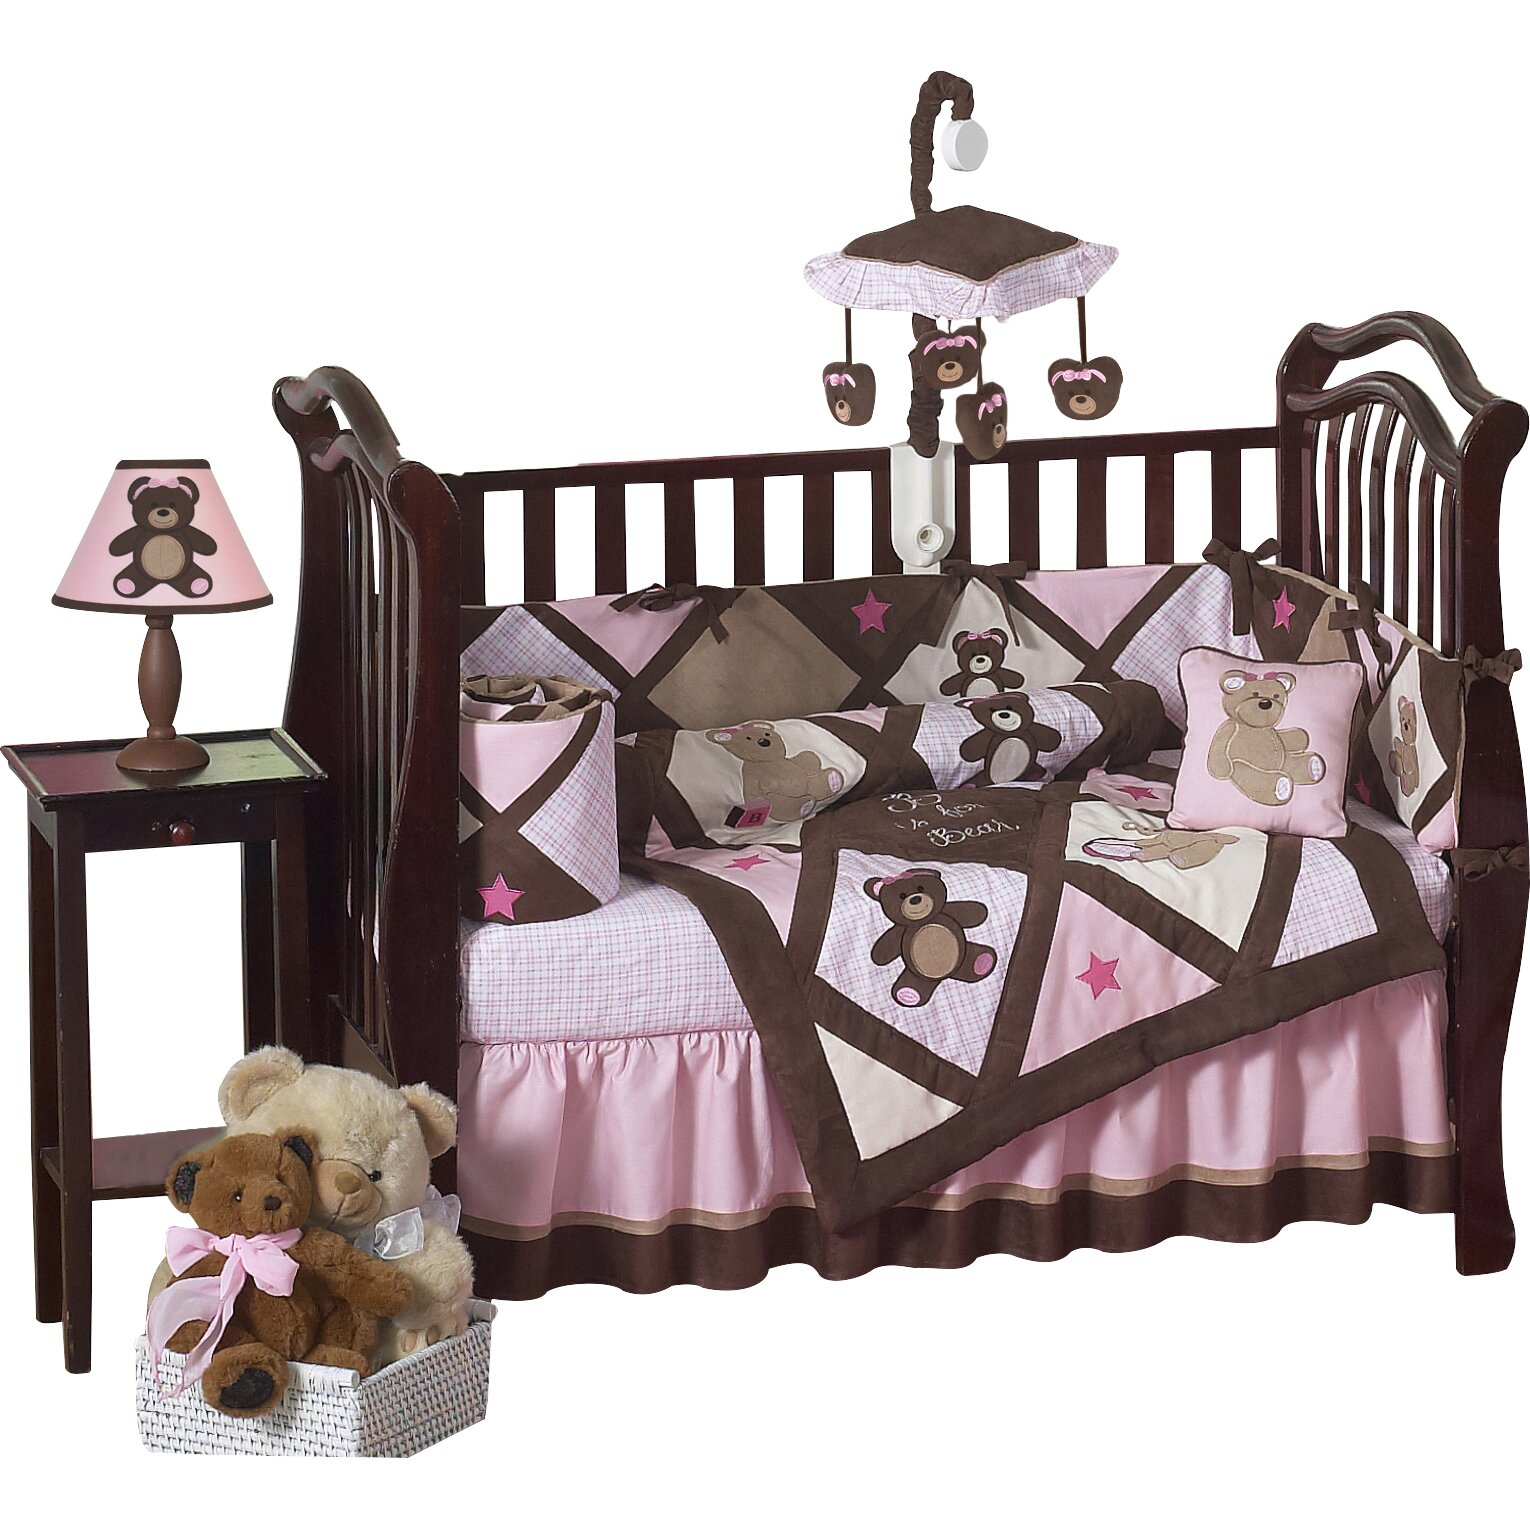 of decoration bedding little by sweet baby jojo designs cribs lamb picture crib